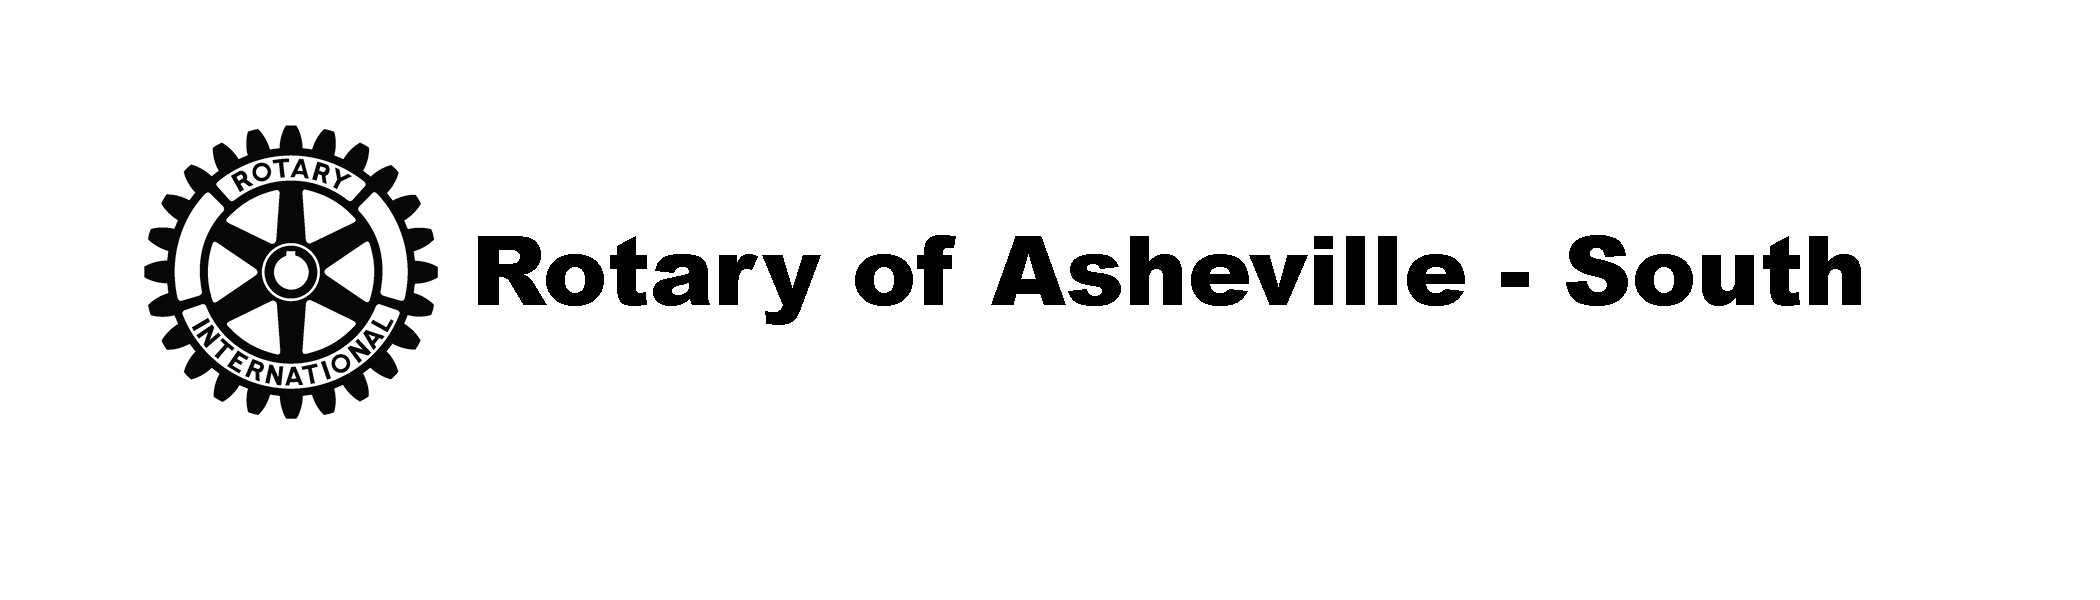 Asheville Rotary Club South